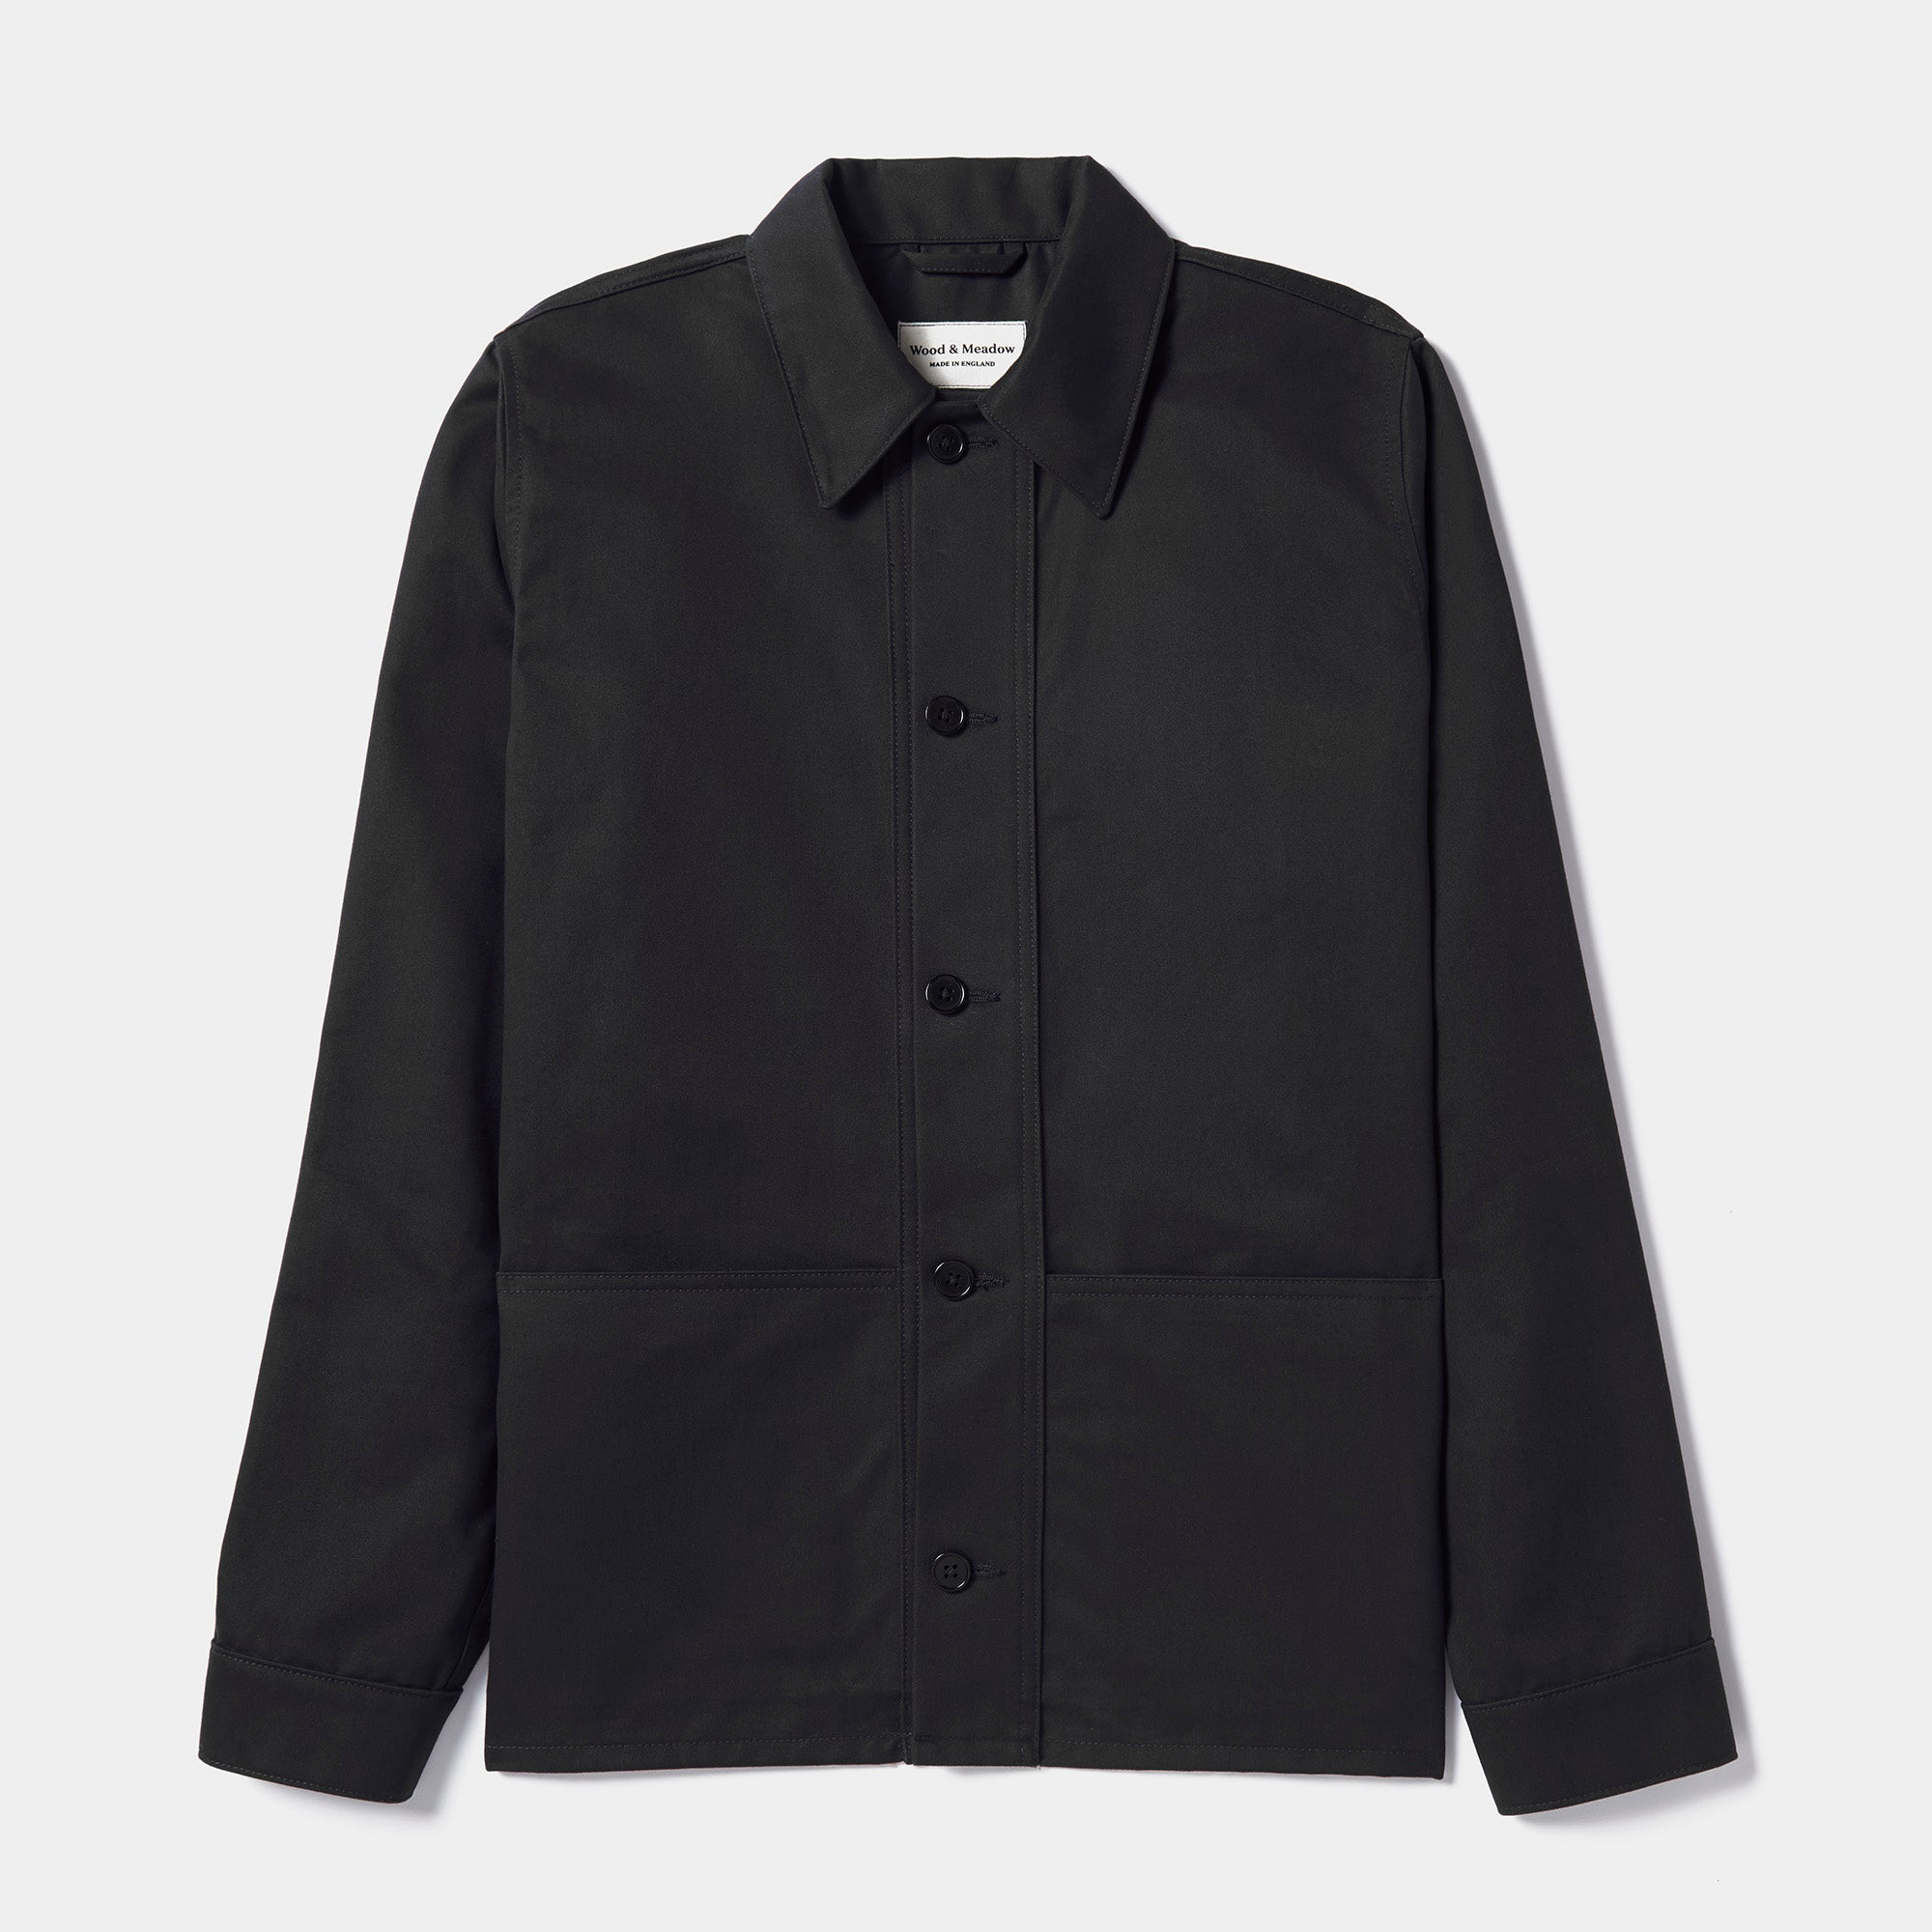 Wood & Meadow Work Jacket in Black Drill